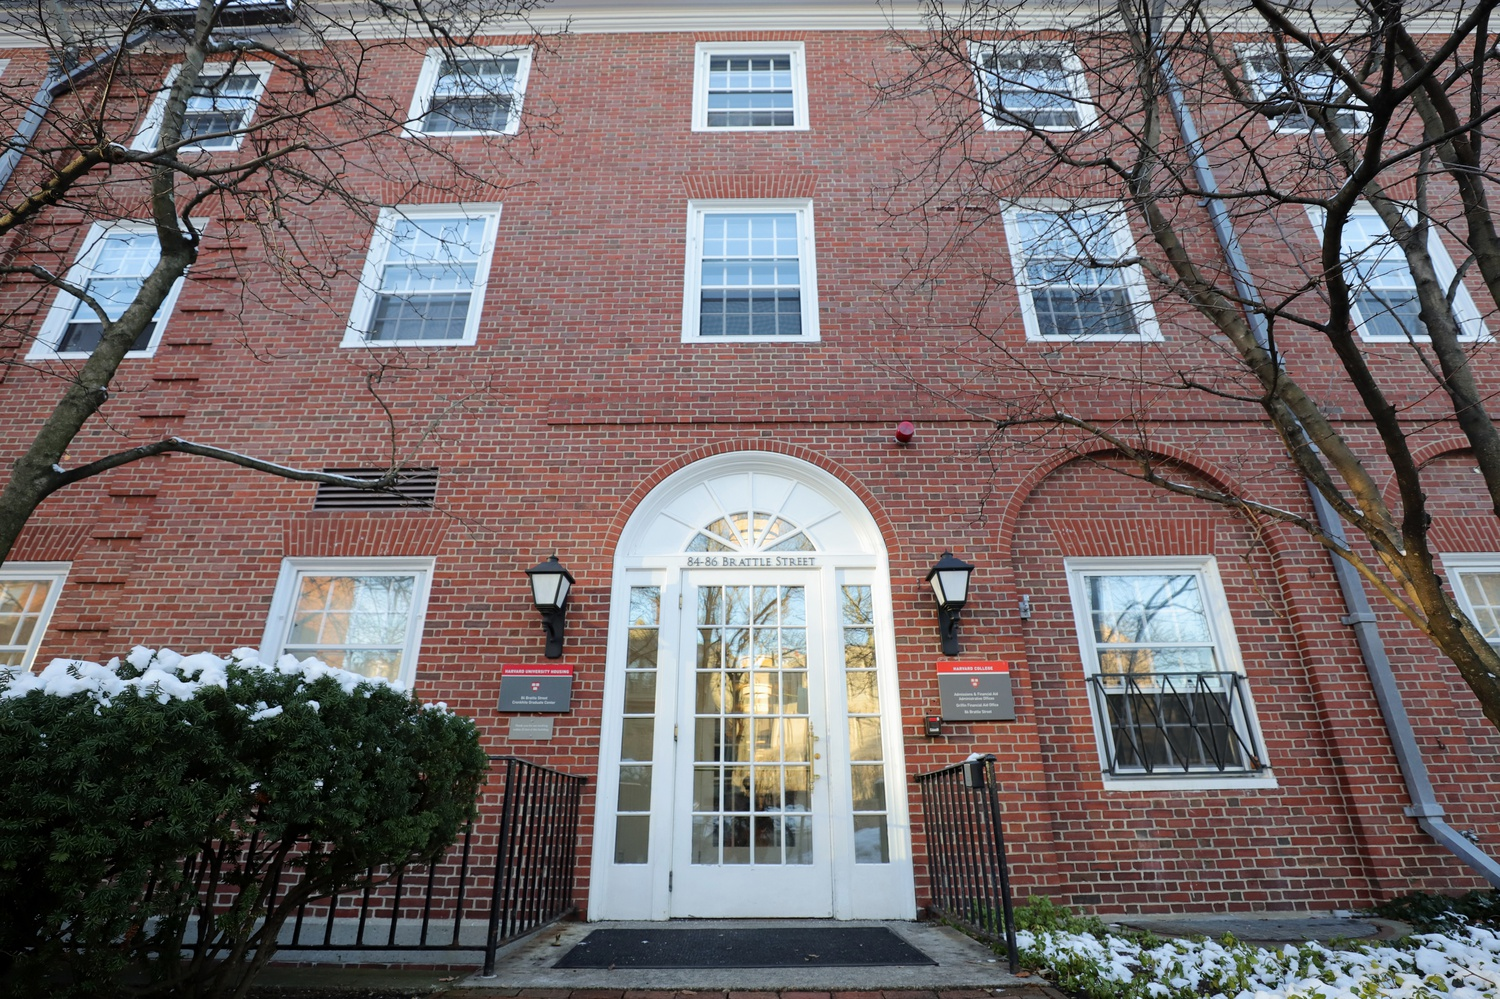 The Harvard College Office of Admissions and Financial Aid is located in Radcliffe Yard.